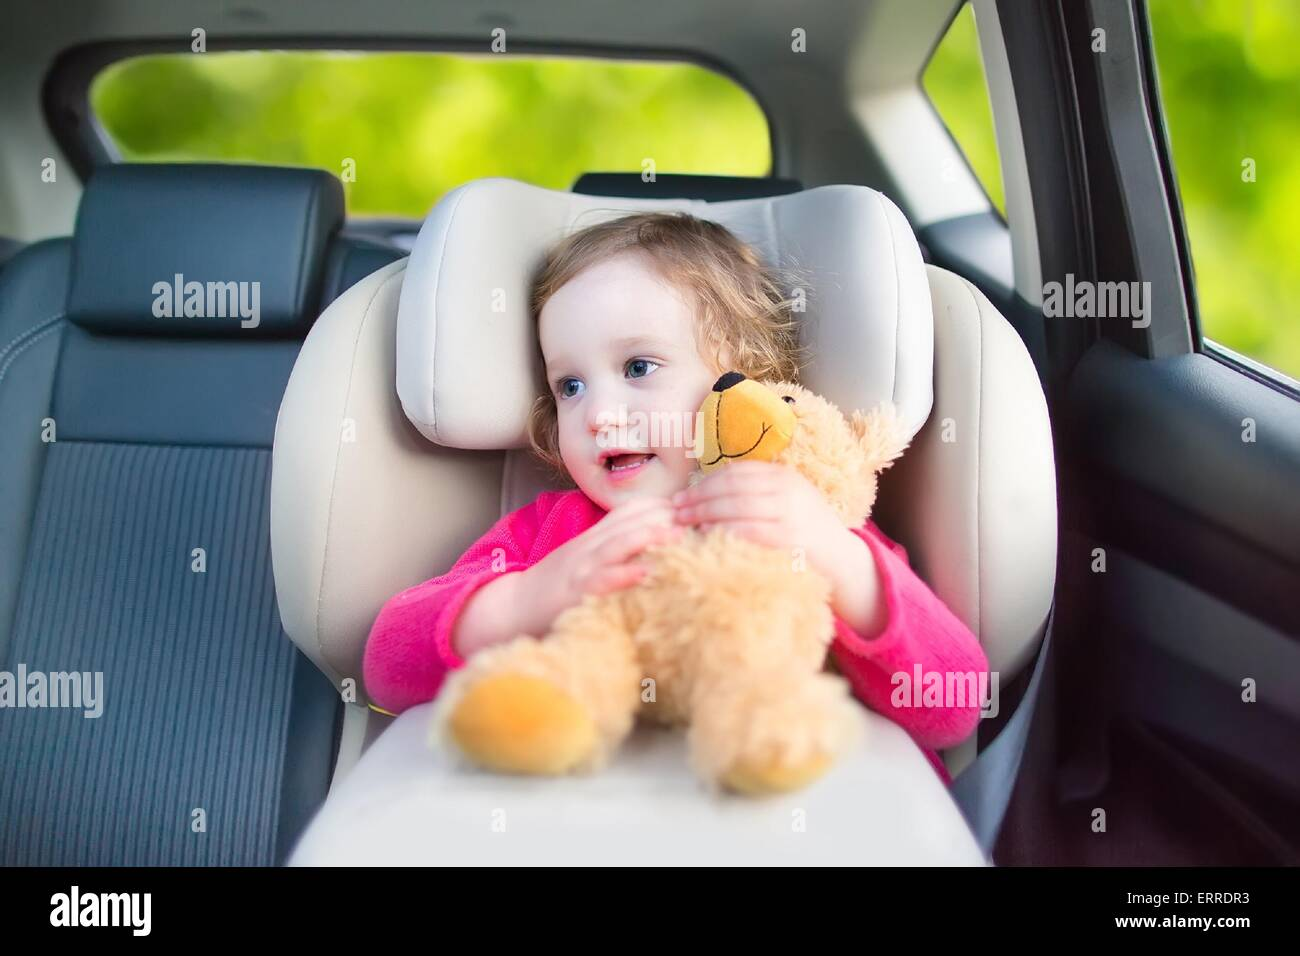 Cute curly laughing and talking toddler girl playing with a toy bear enjoying a family vacation car ride in modern - Stock Image